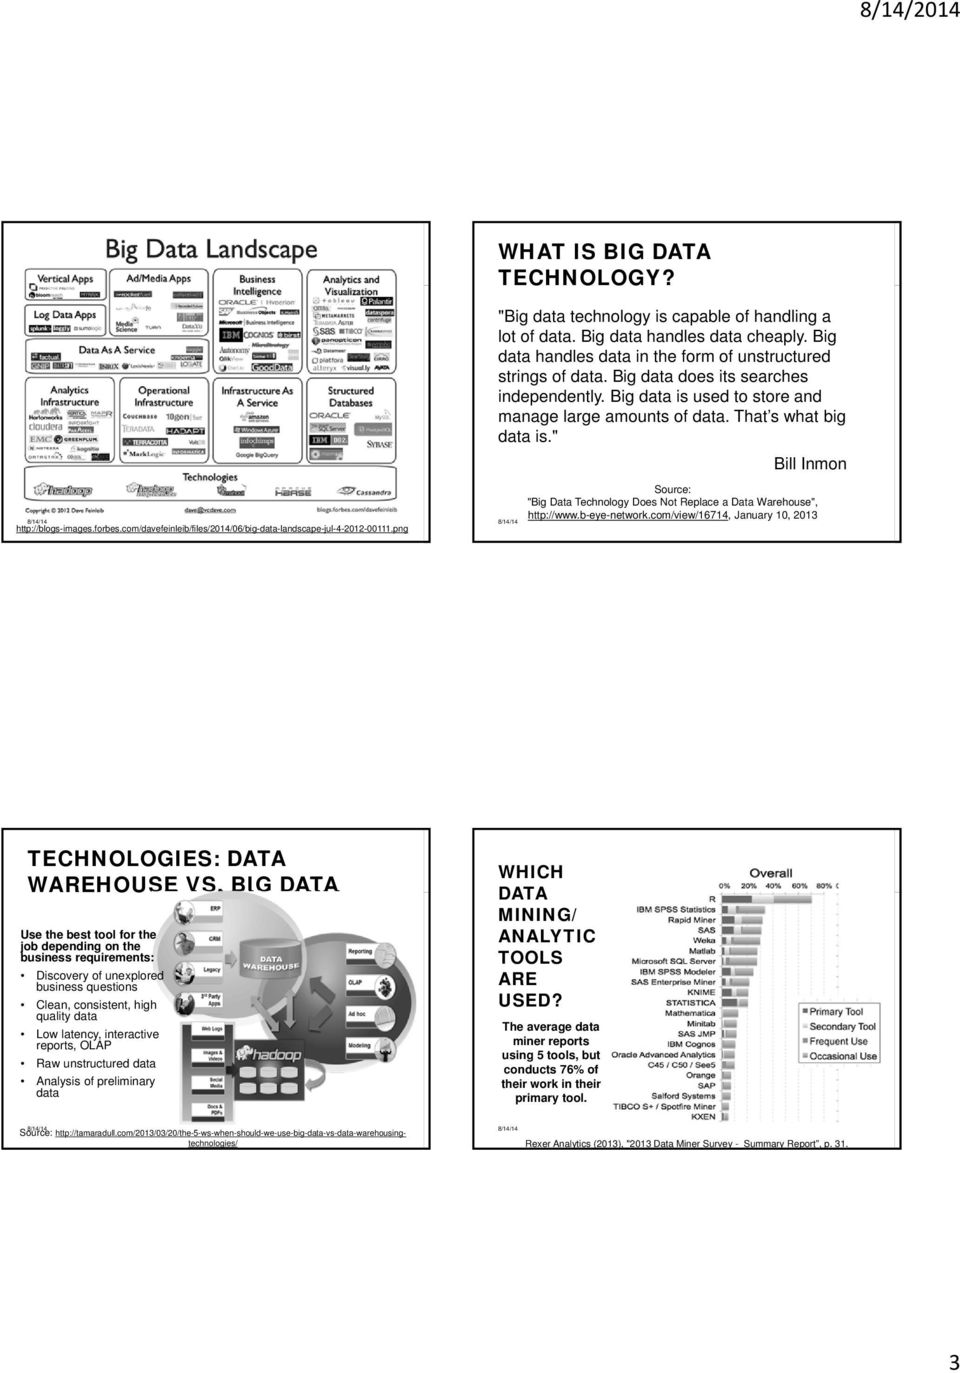 """ Bill Inmon http://blogs-images.forbes.com/davefeinleib/files/2014/06/big-data-landscape-jul-4-2012-00111.png Source: ""Big Data Technology Does Not Replace a Data Warehouse"", http://www."